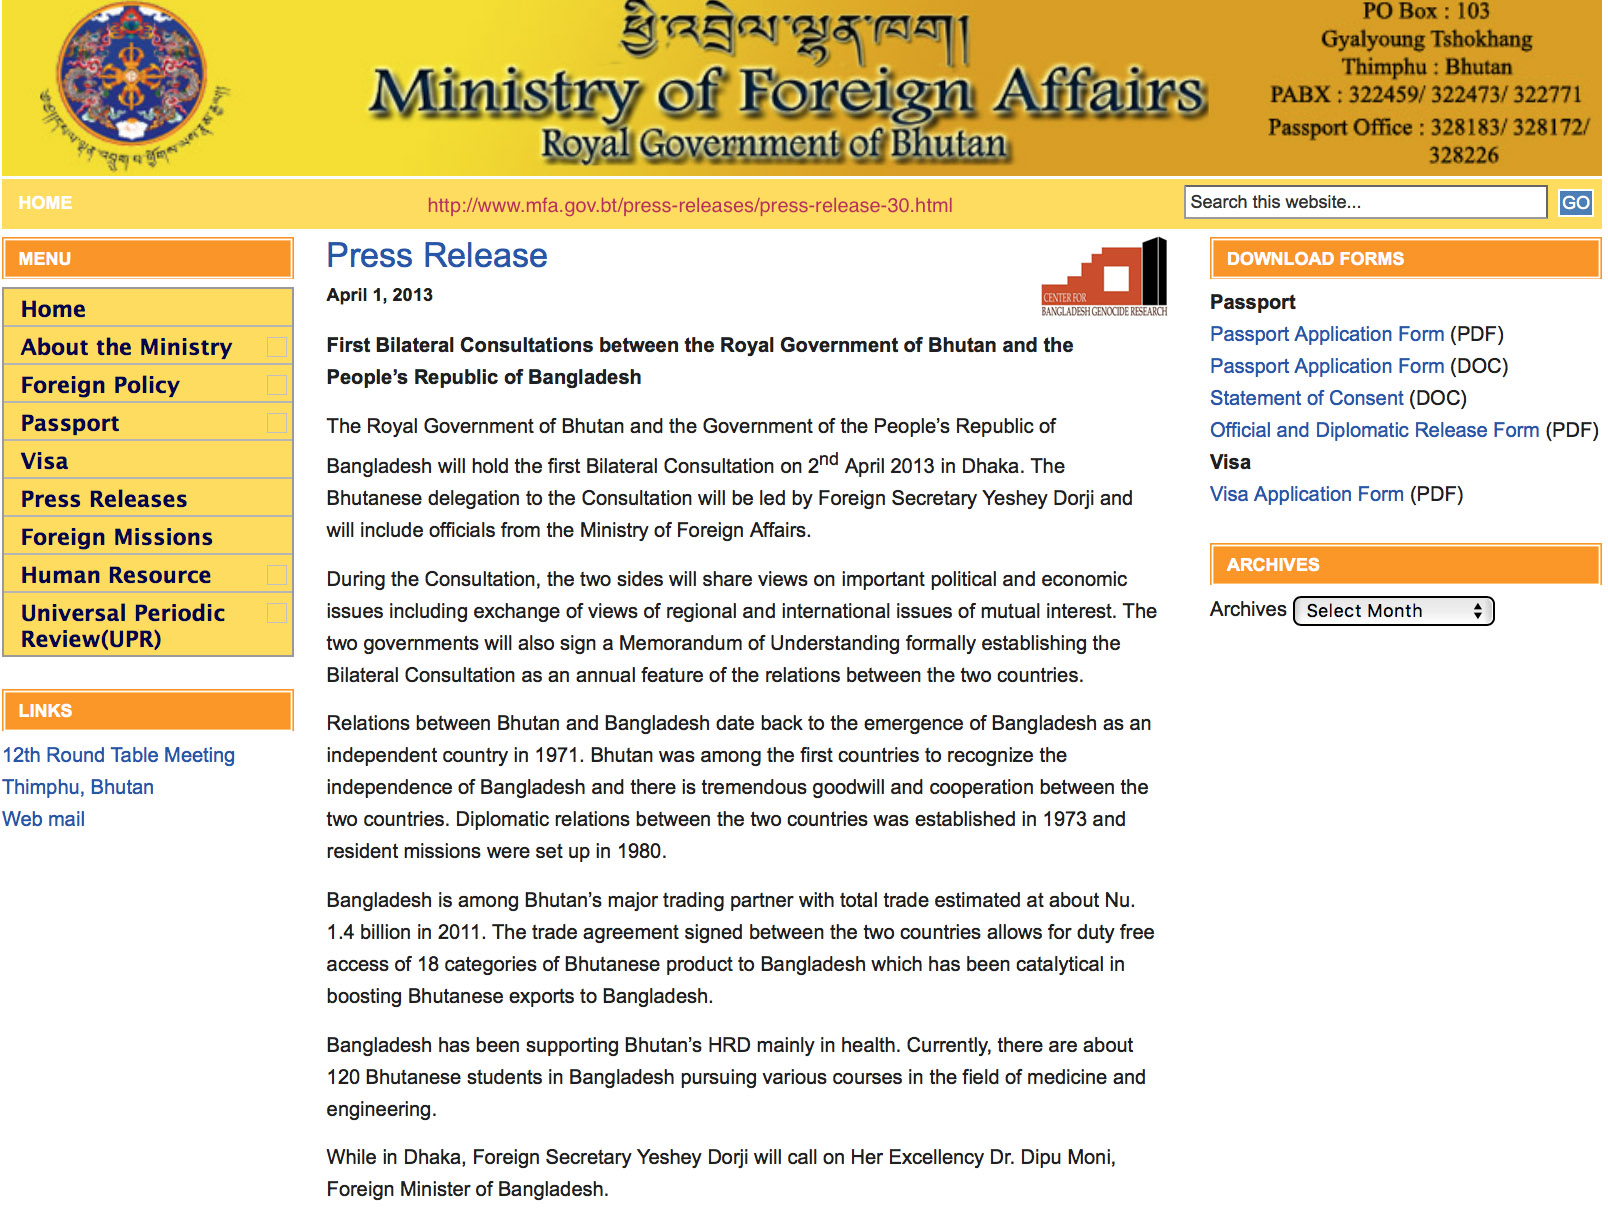 Ministry of Foreign Affairs, Bhutan, April 1, 2013